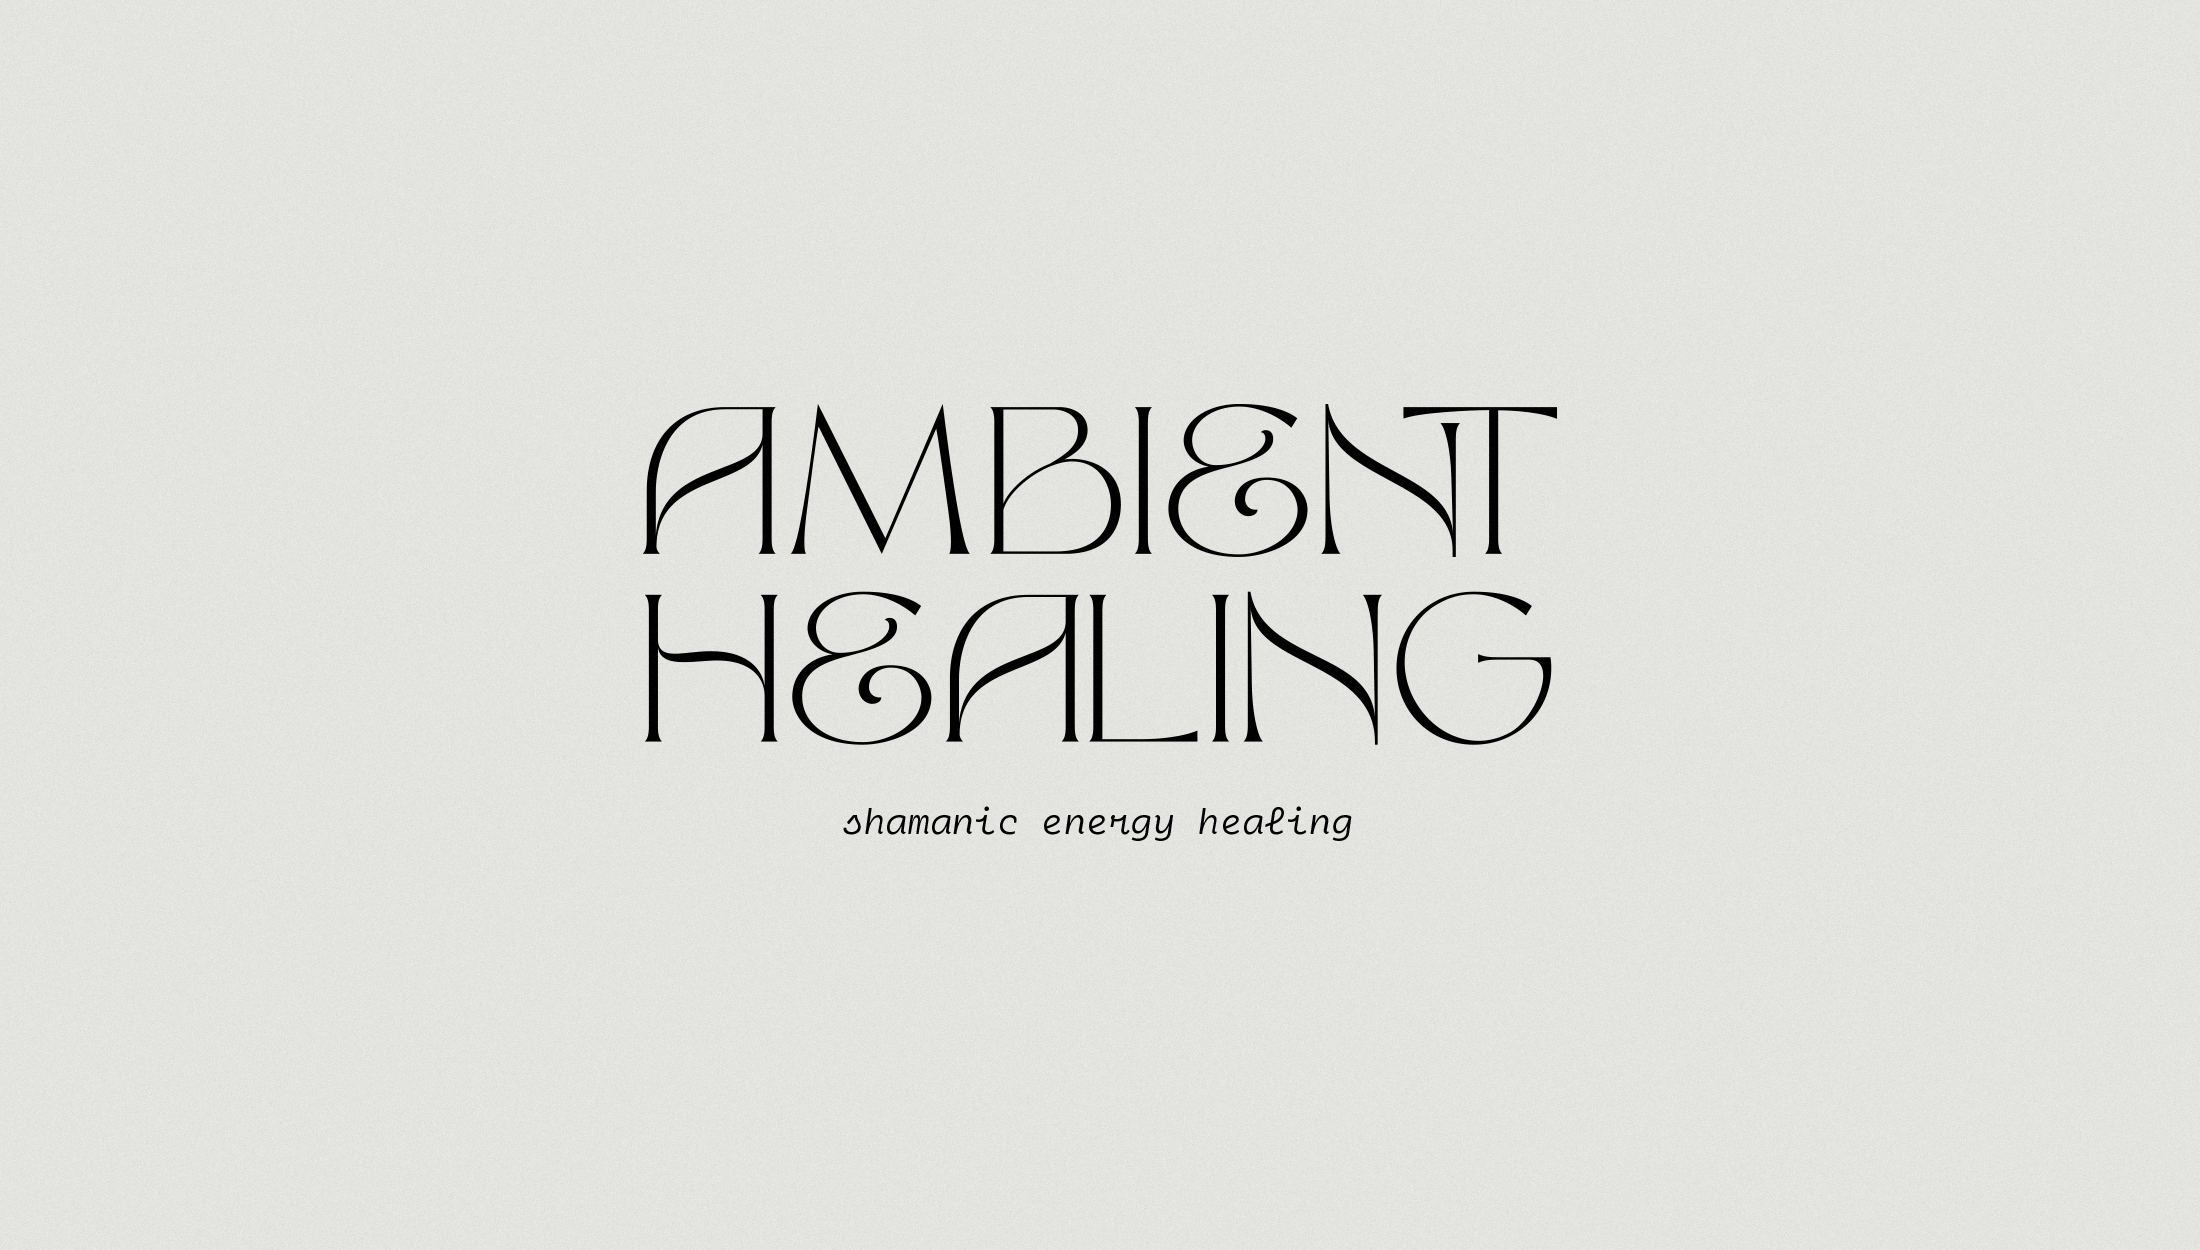 Logo design for Ambient Healing, shamanic energy healing bringing a calm and balanced shakra to negate the stress of our daily lives and offering the tools we need to promote a positive state of mind - designed by Wiltshire-based graphic designer, Kaye Huett